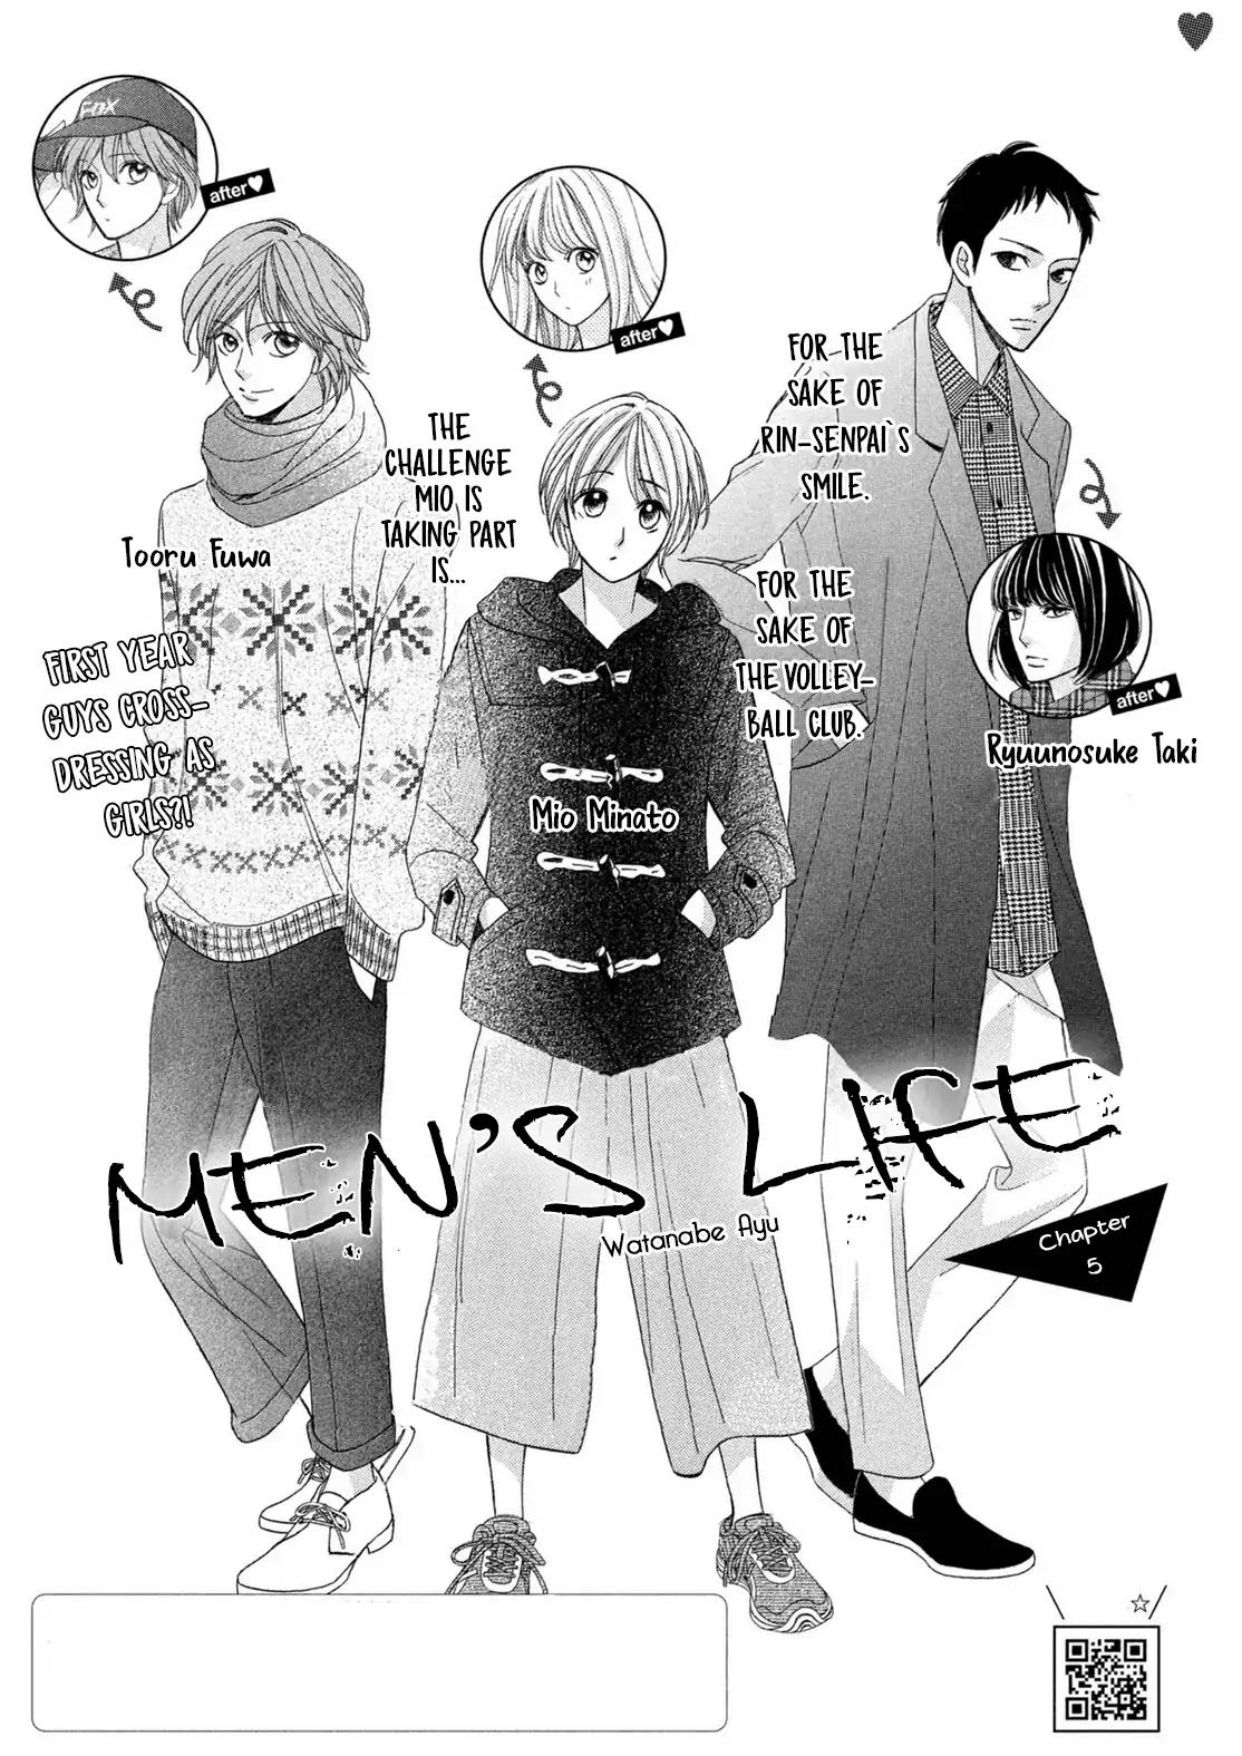 Pin by Animemangaluver on Men's Life Manga Twin brothers